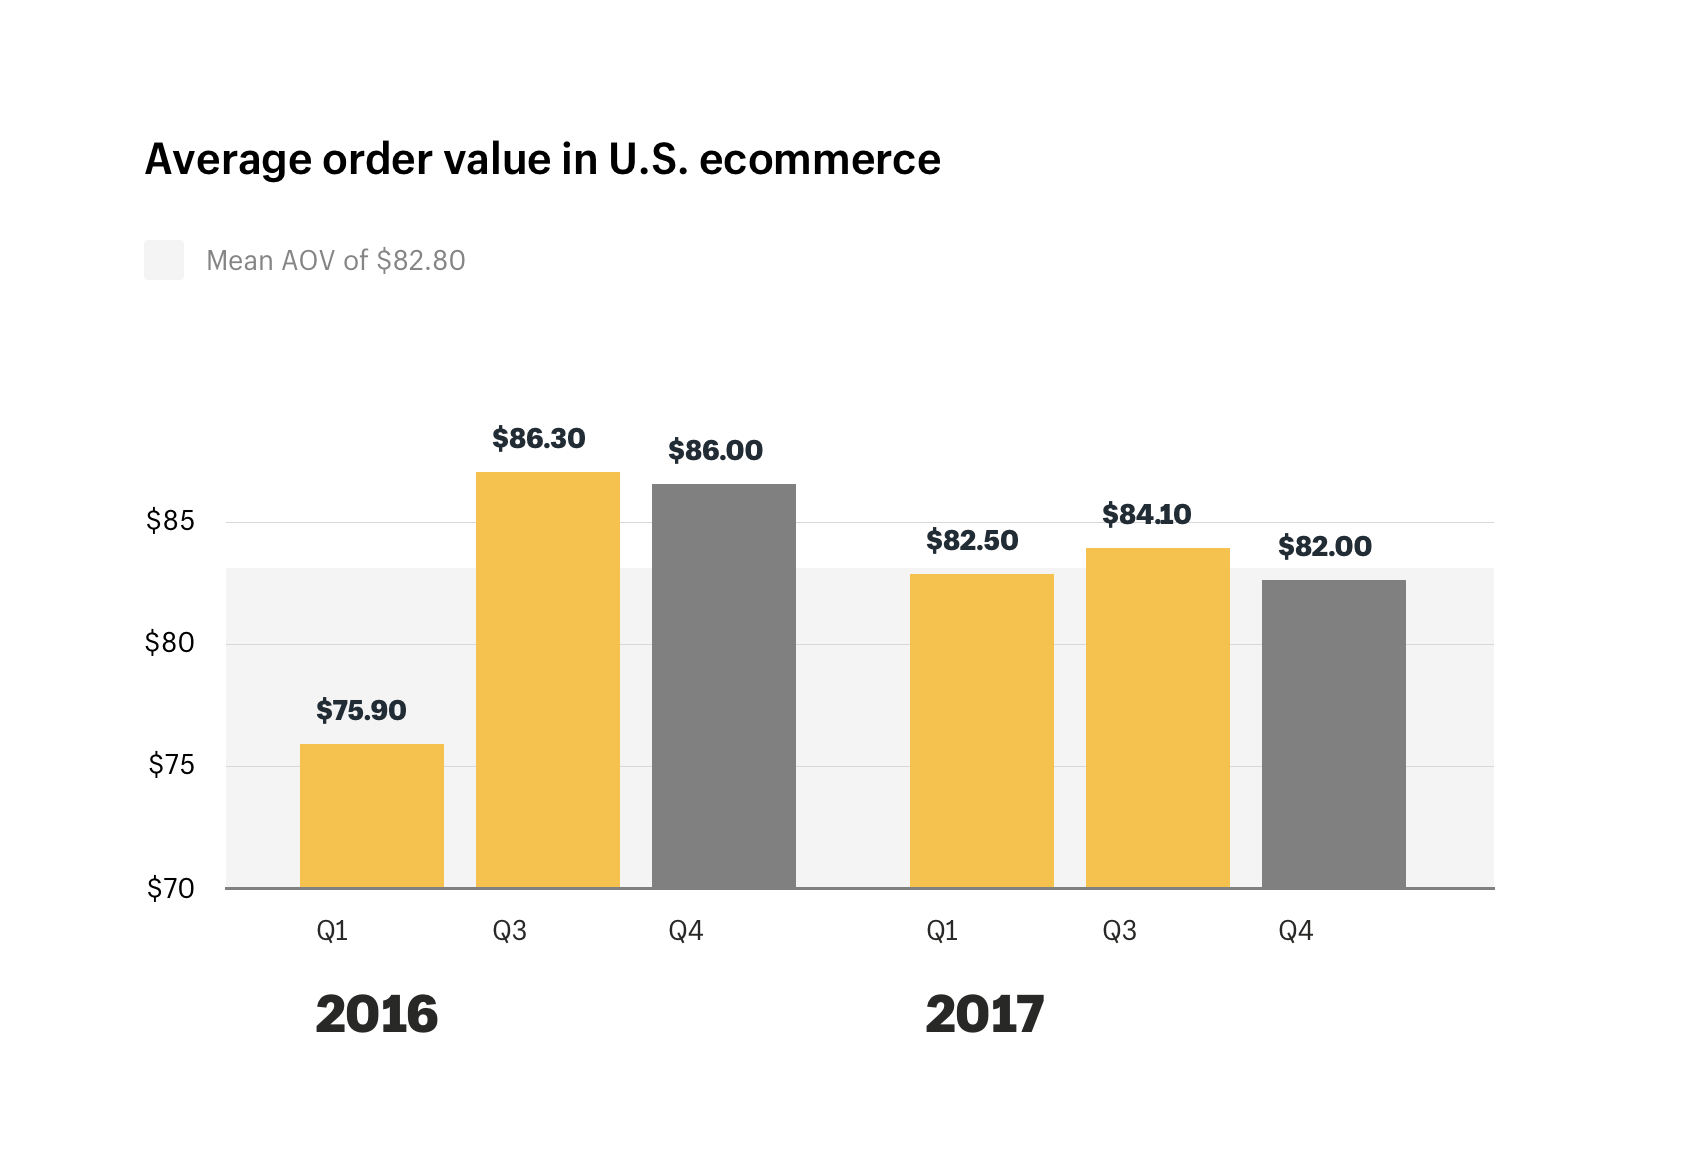 Average order value in U.S. ecommerce